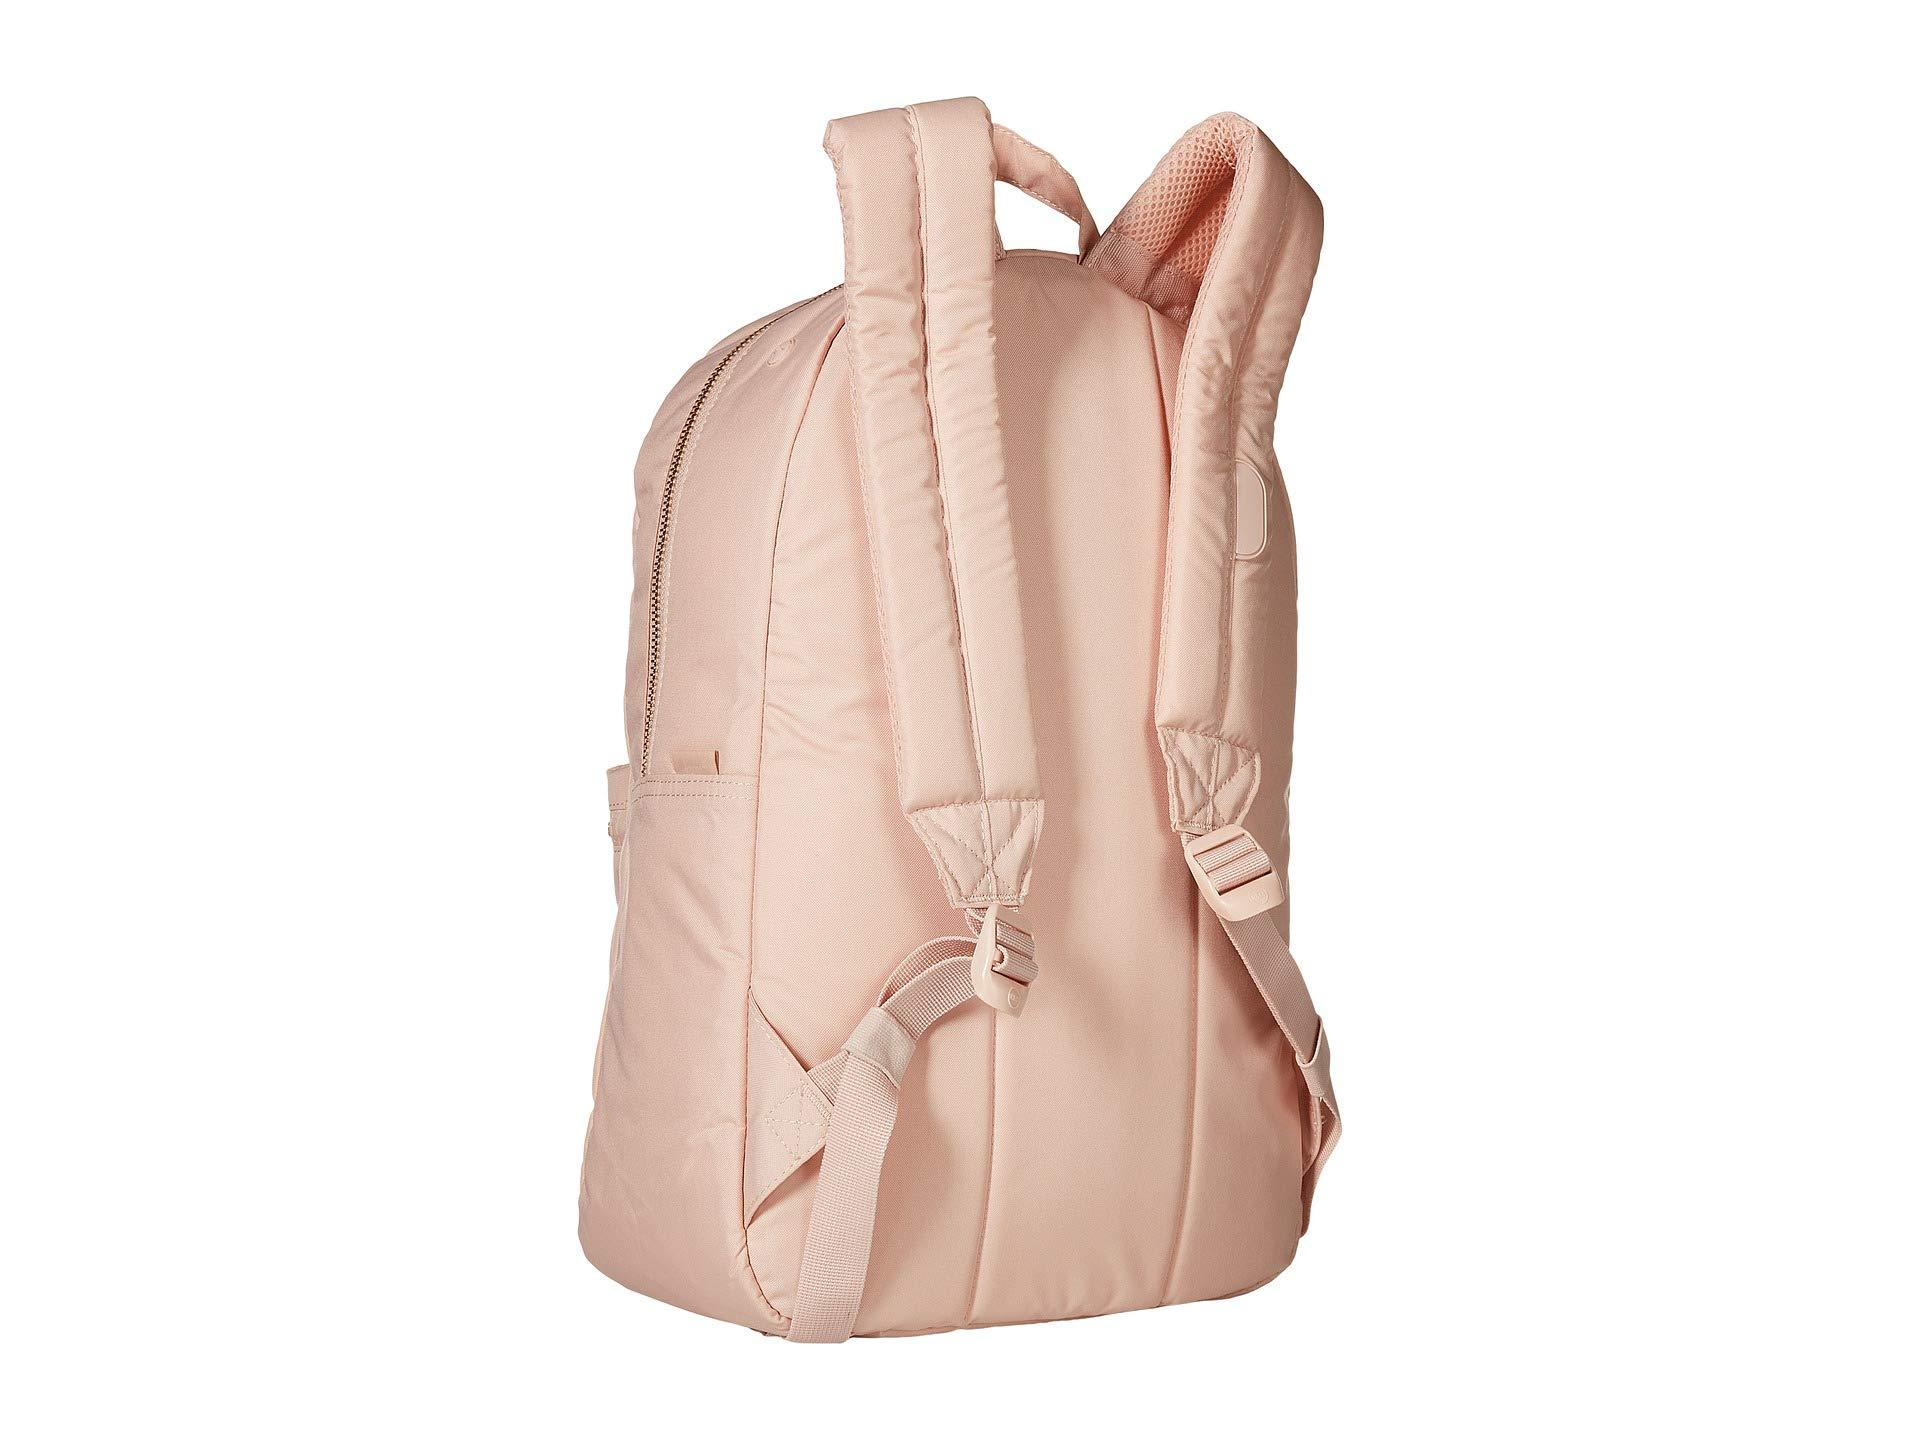 c1526576a19 Herschel Supply Co. - Pink Settlement Light (black) Backpack Bags for Men  -. View fullscreen